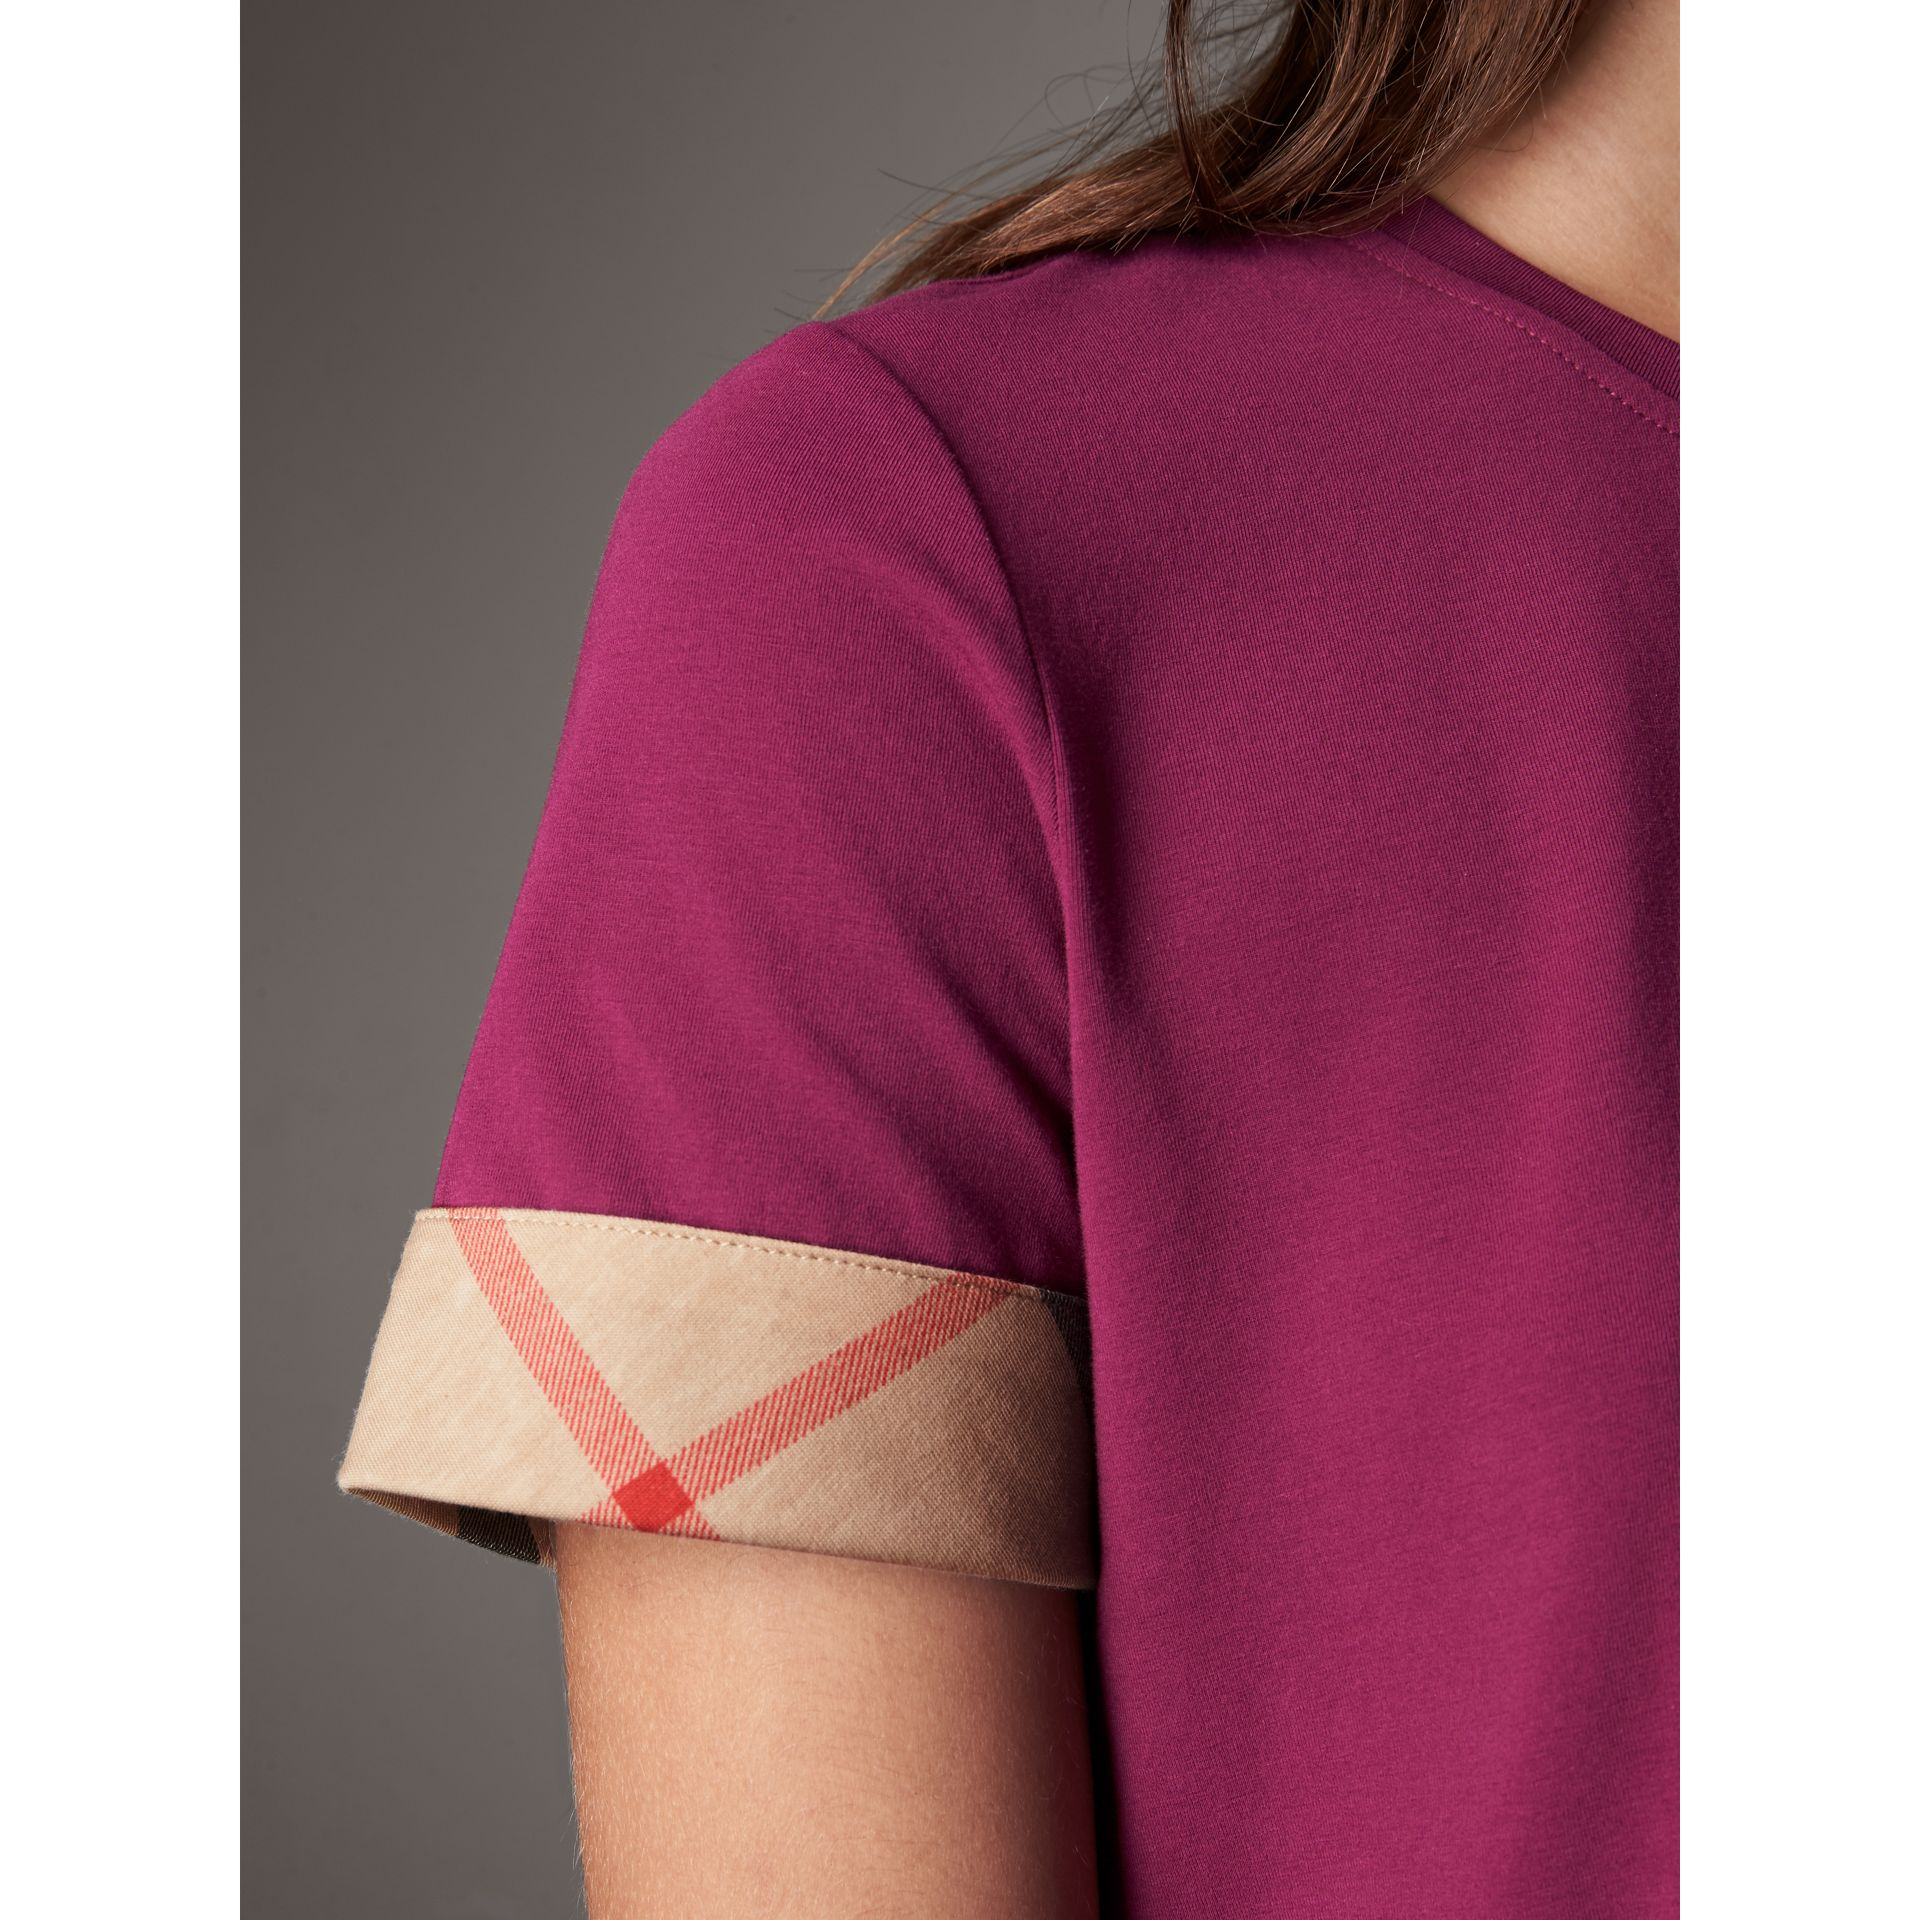 Check Cuff Stretch Cotton T-Shirt in Magenta Pink - Women | Burberry Canada - gallery image 5